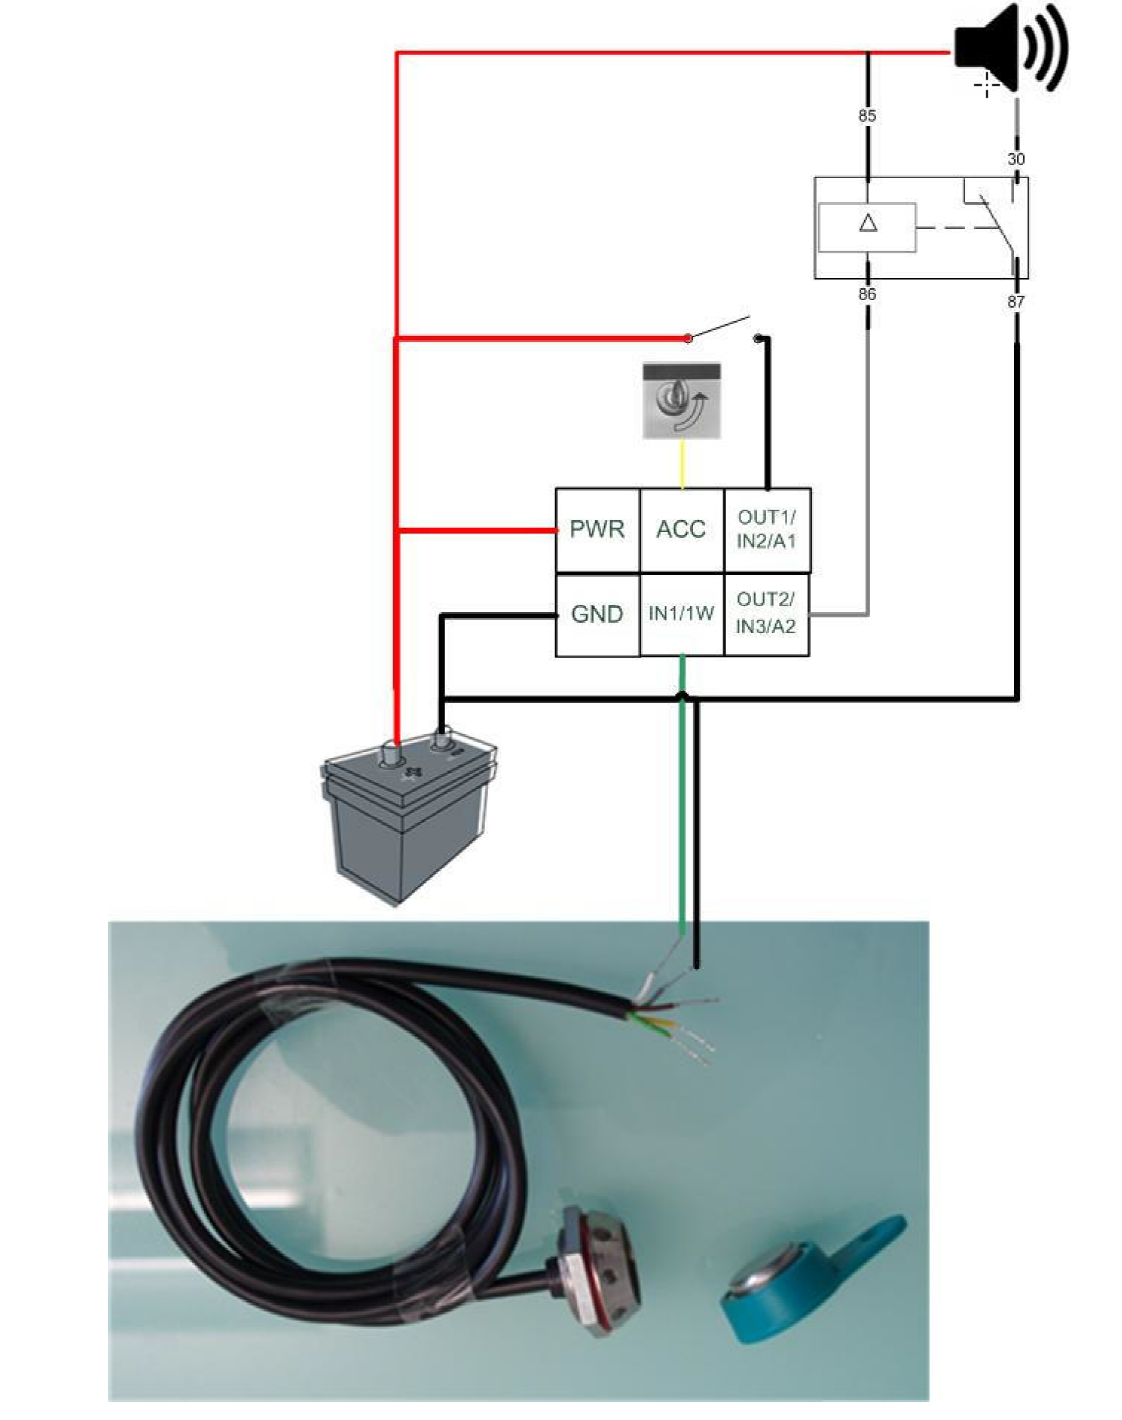 image2015 5 12 14%3A5%3A12?version=1&modificationDate=1431432359069&api=v2 gps dynamic einbauanleitung ak1 Basic Electrical Wiring Diagrams at panicattacktreatment.co